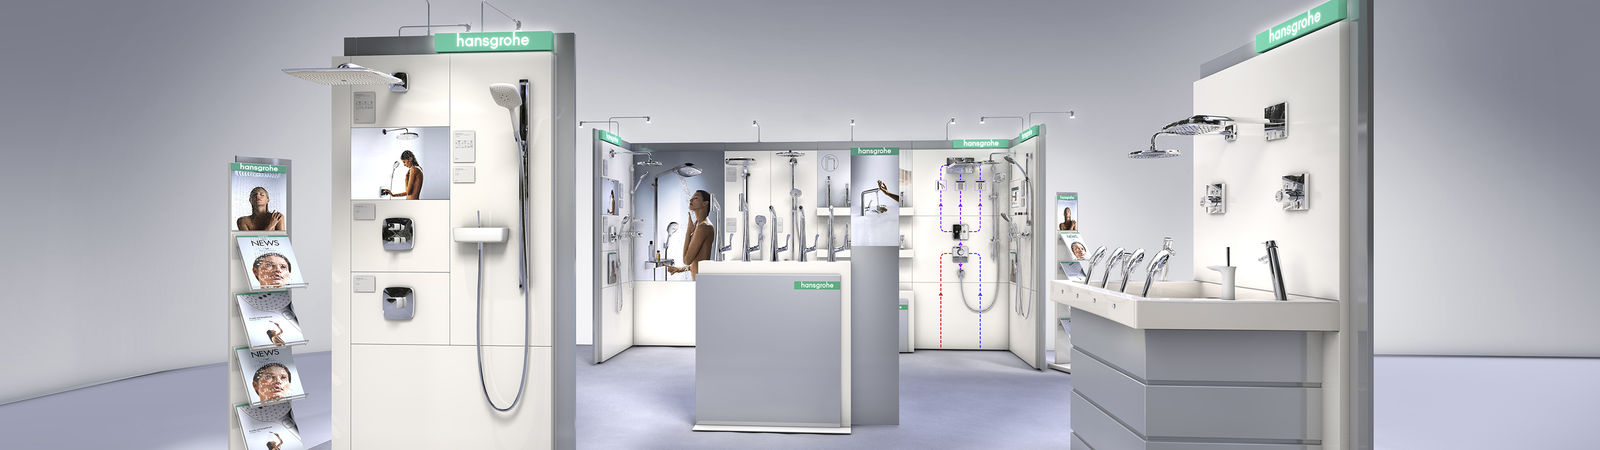 shop in shop, shop systems, Hansgrohe, shop concepts, shop fitting components